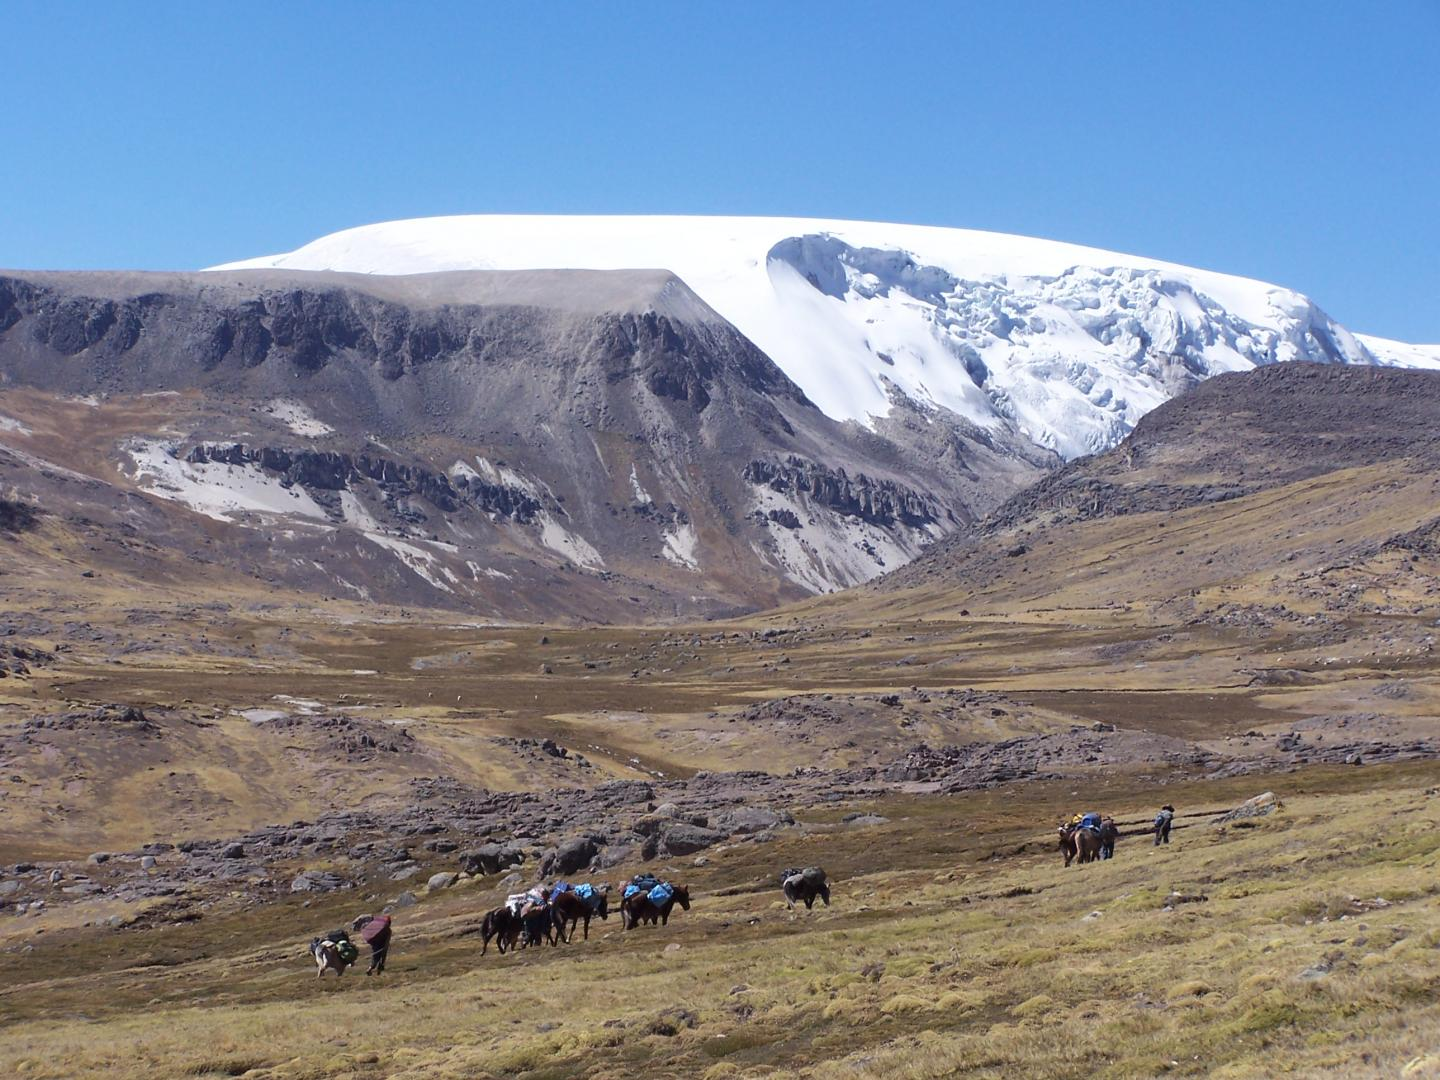 North Dome of the Quelccaya Ice Cap (1 of 2)